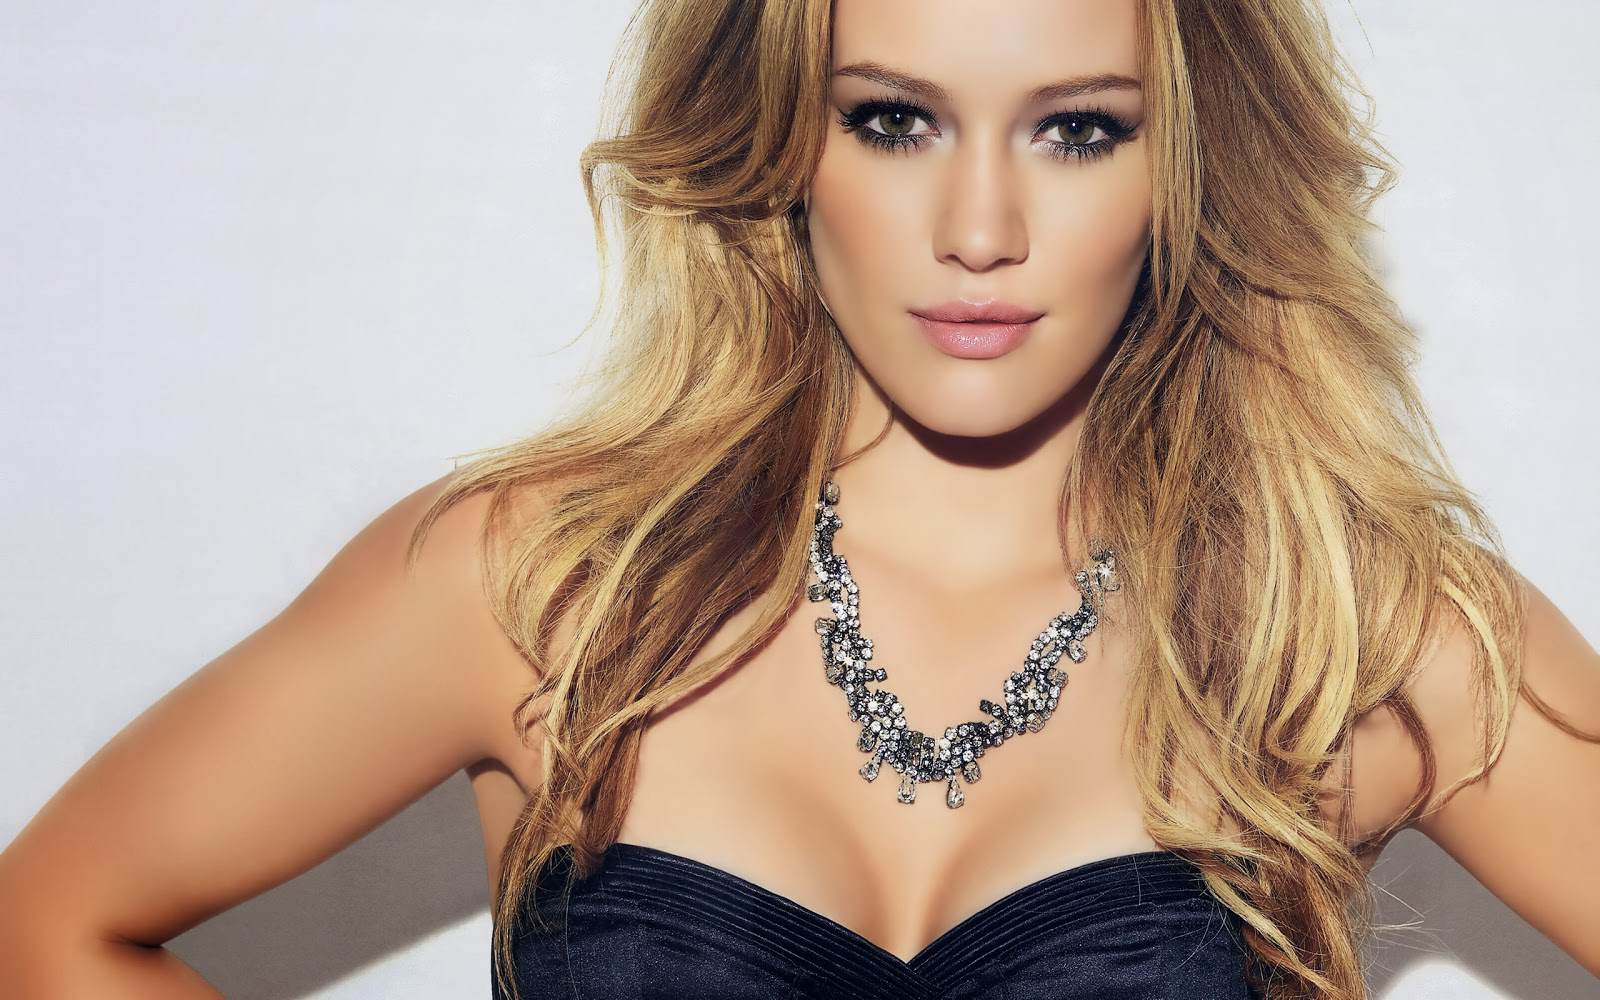 Hilary Duff Is On Tinder, But Not For The Reason All Guys Were Hoping duff